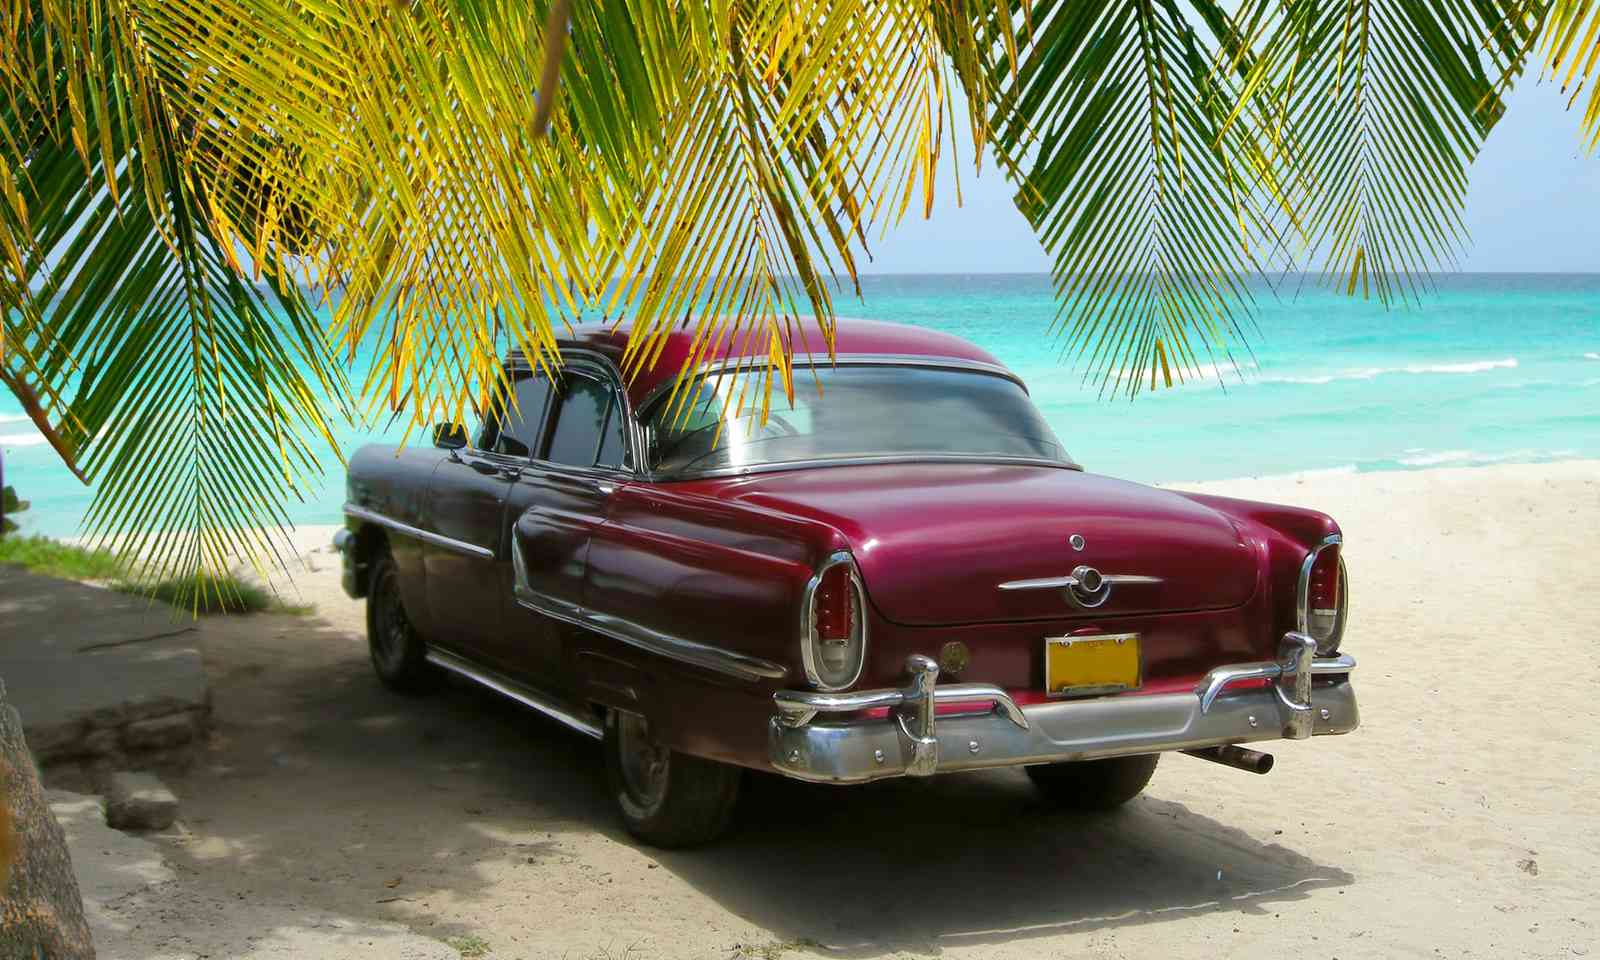 Classic car on the beach in Varadero (Dreamstime)